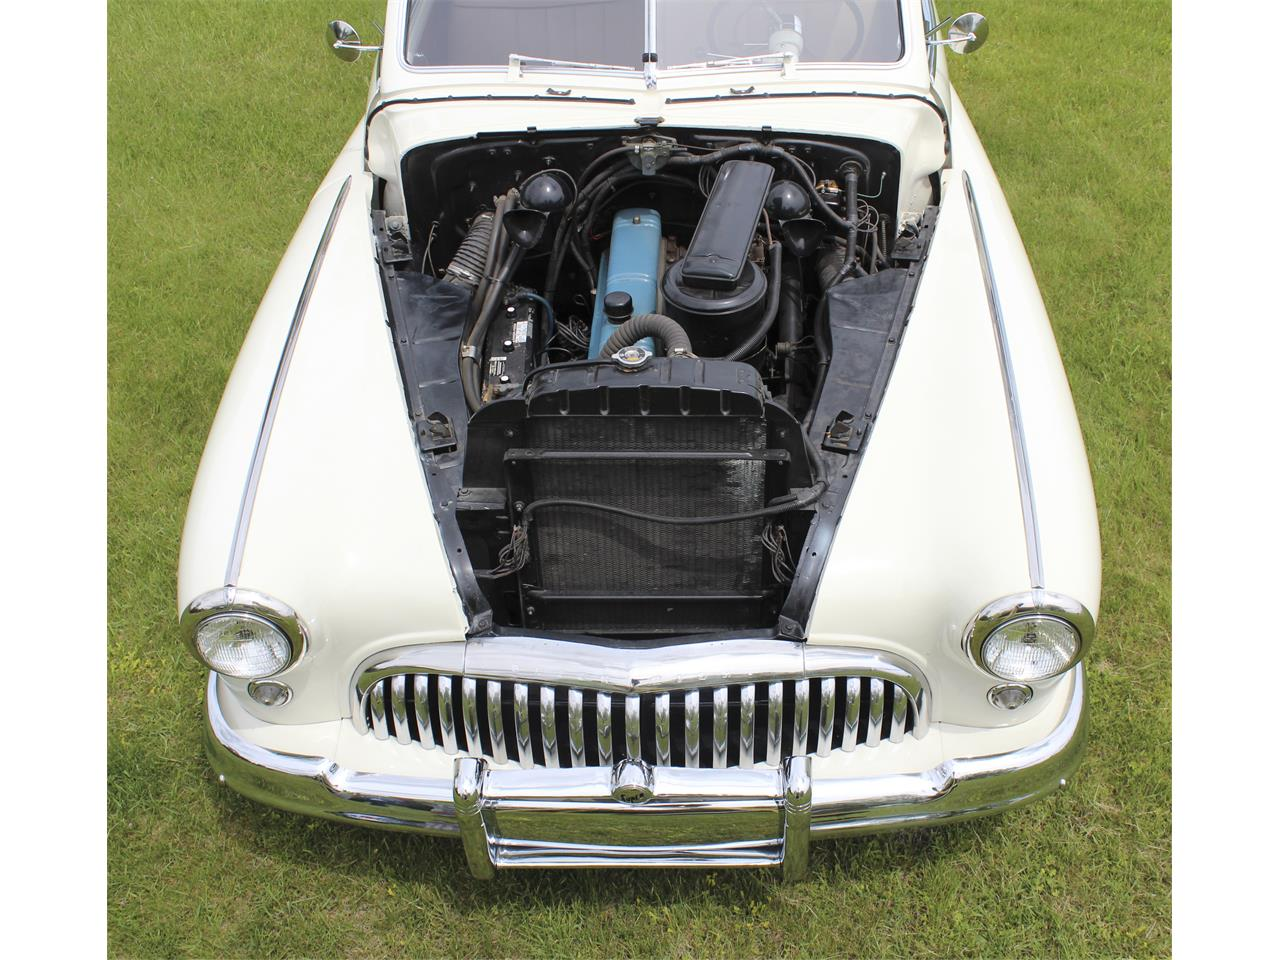 Large Picture of 1948 Buick Convertible located in Michigan Offered by a Private Seller - QJJ6